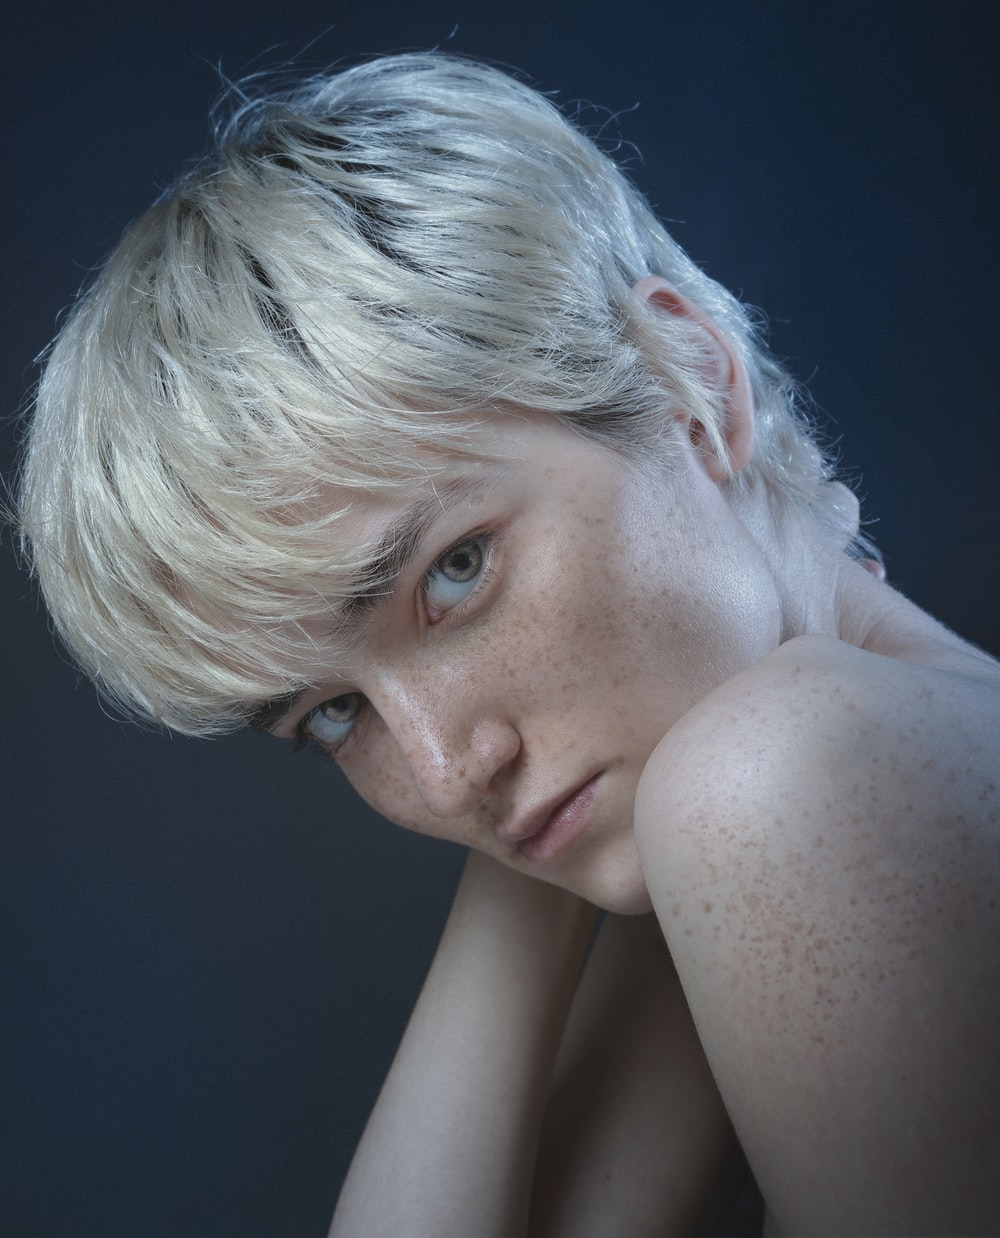 topless woman with blonde hair